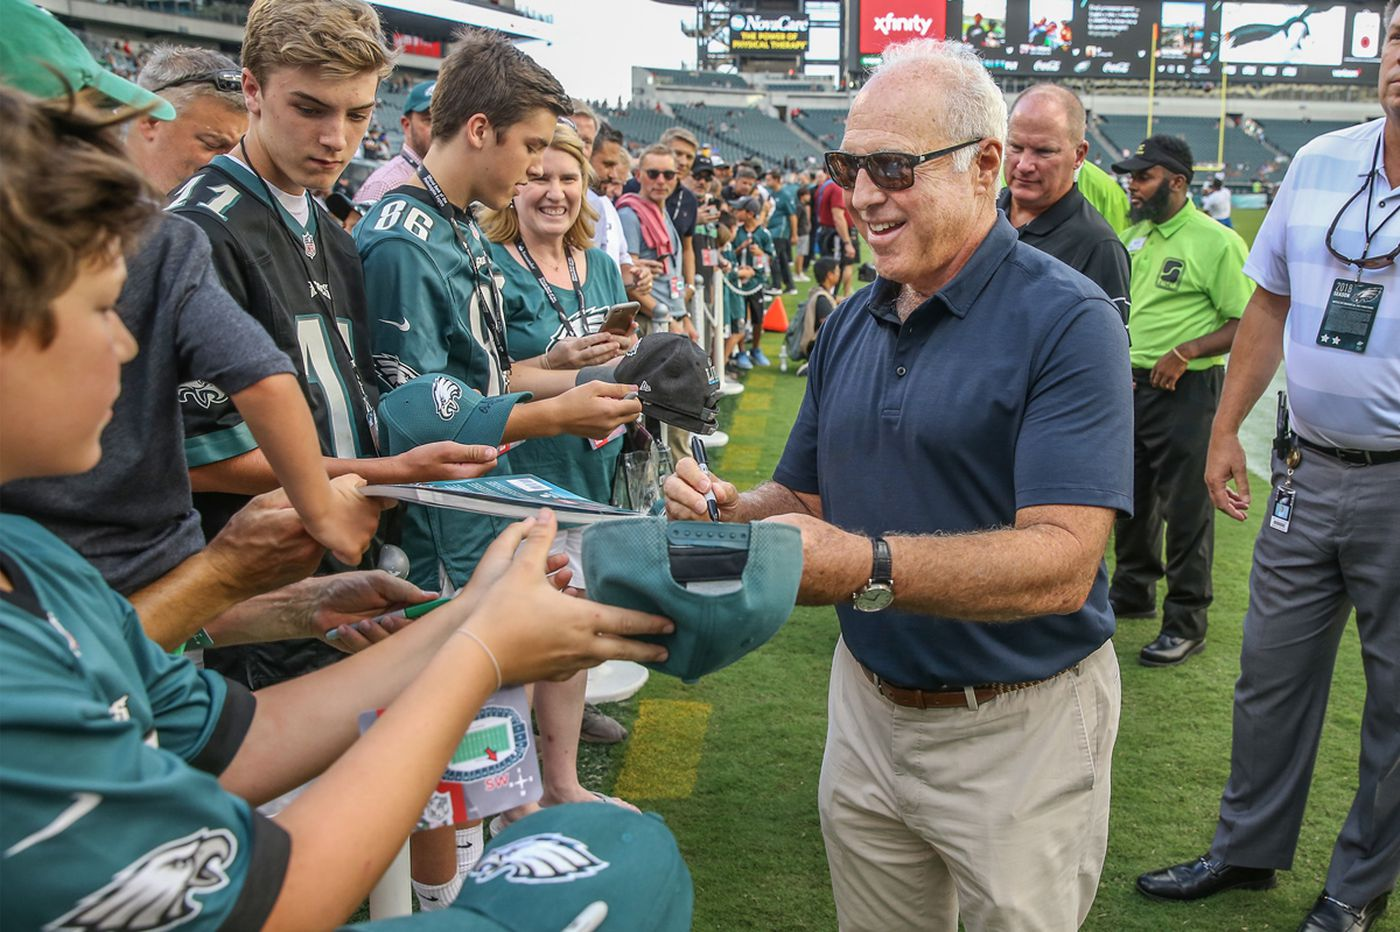 Eagles owner Jeffrey Lurie is donating $1 million to coronavirus research at Penn Medicine